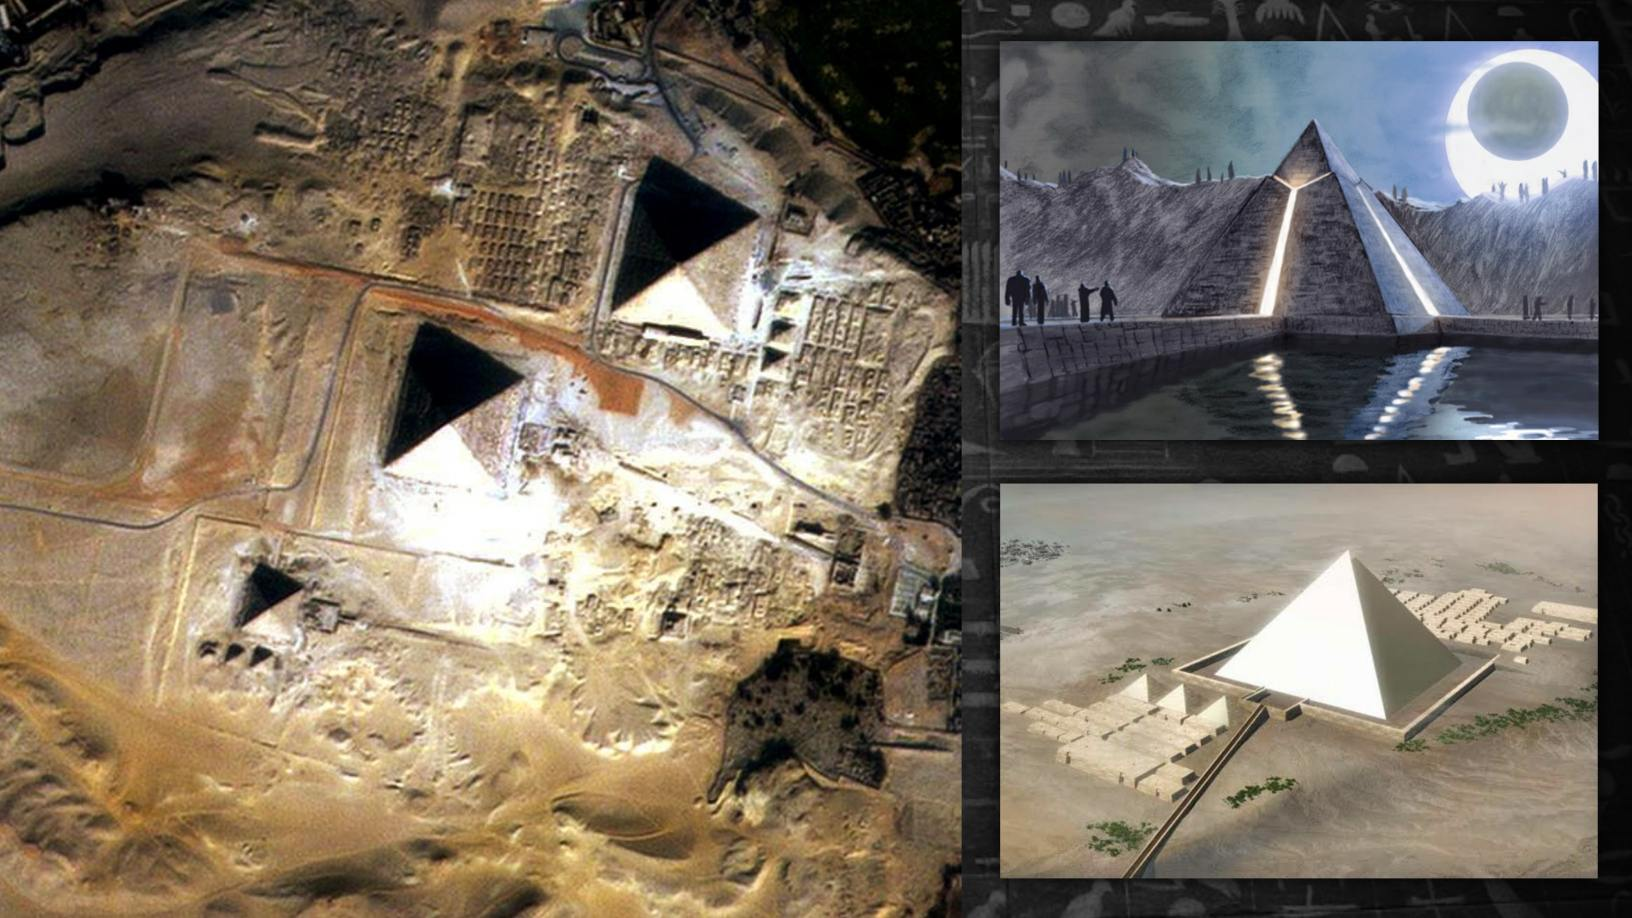 Advanced machines of unknown origin mentioned in a 440 BC text may have helped to build the pyramids of Egypt 5